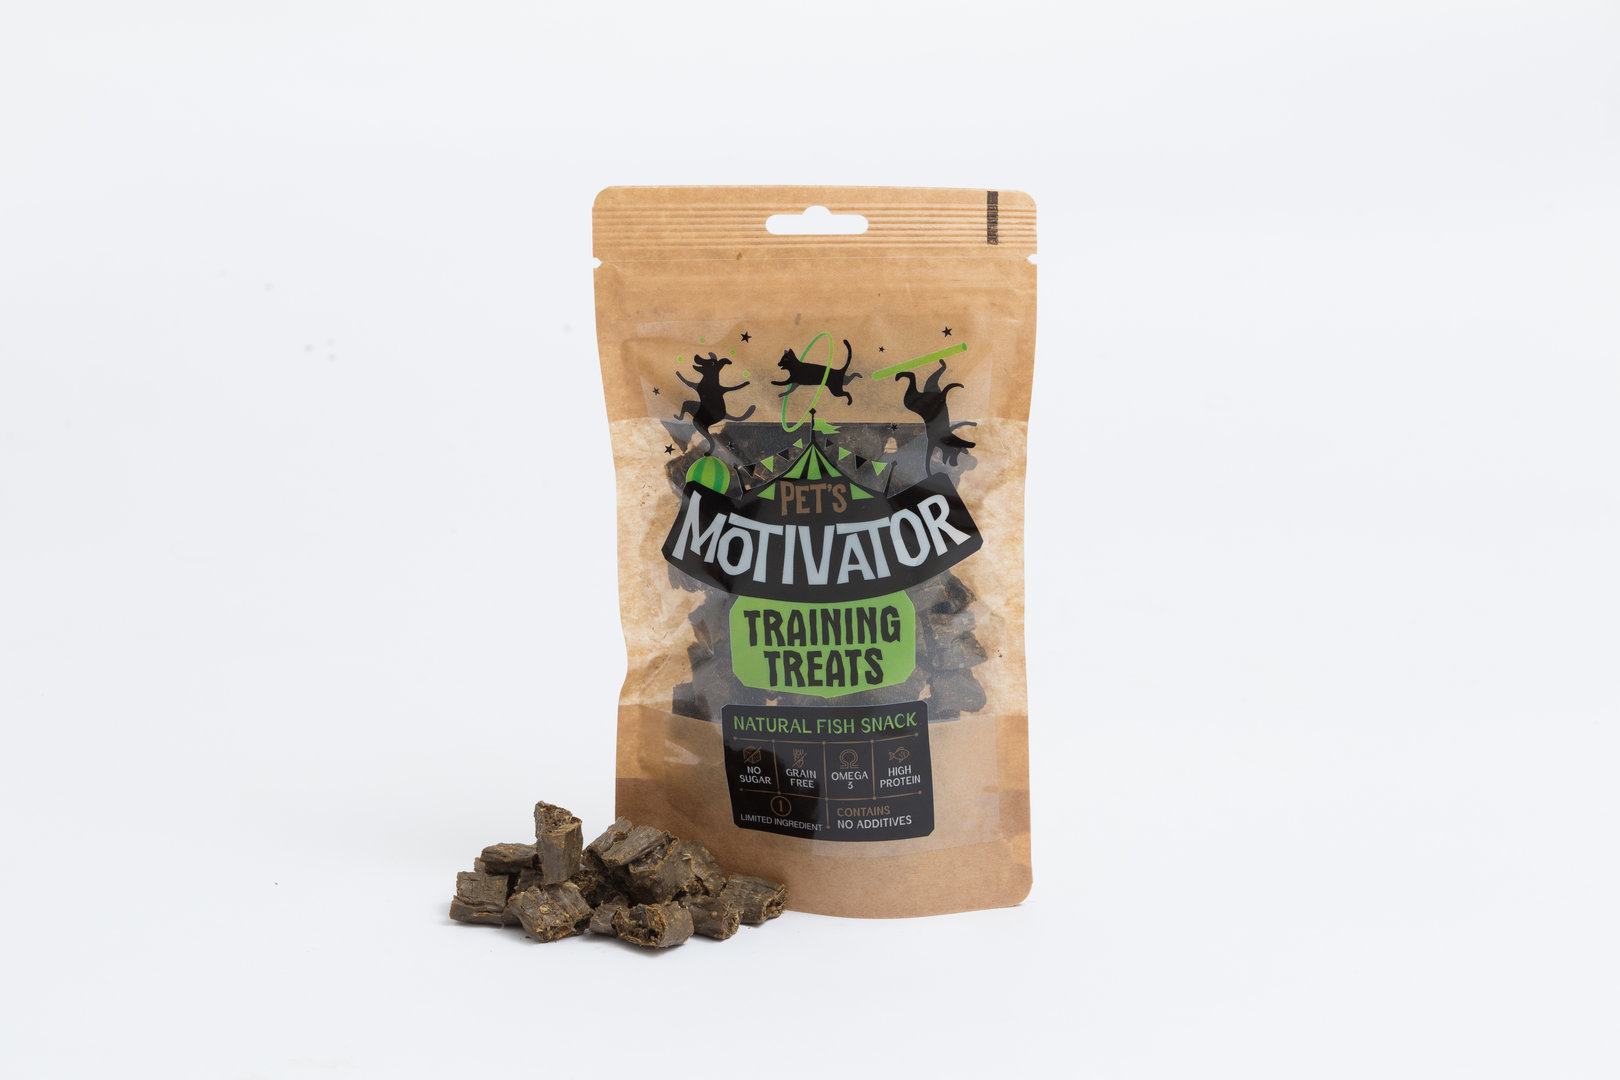 Pet`s Motivator TRAINING TREATS